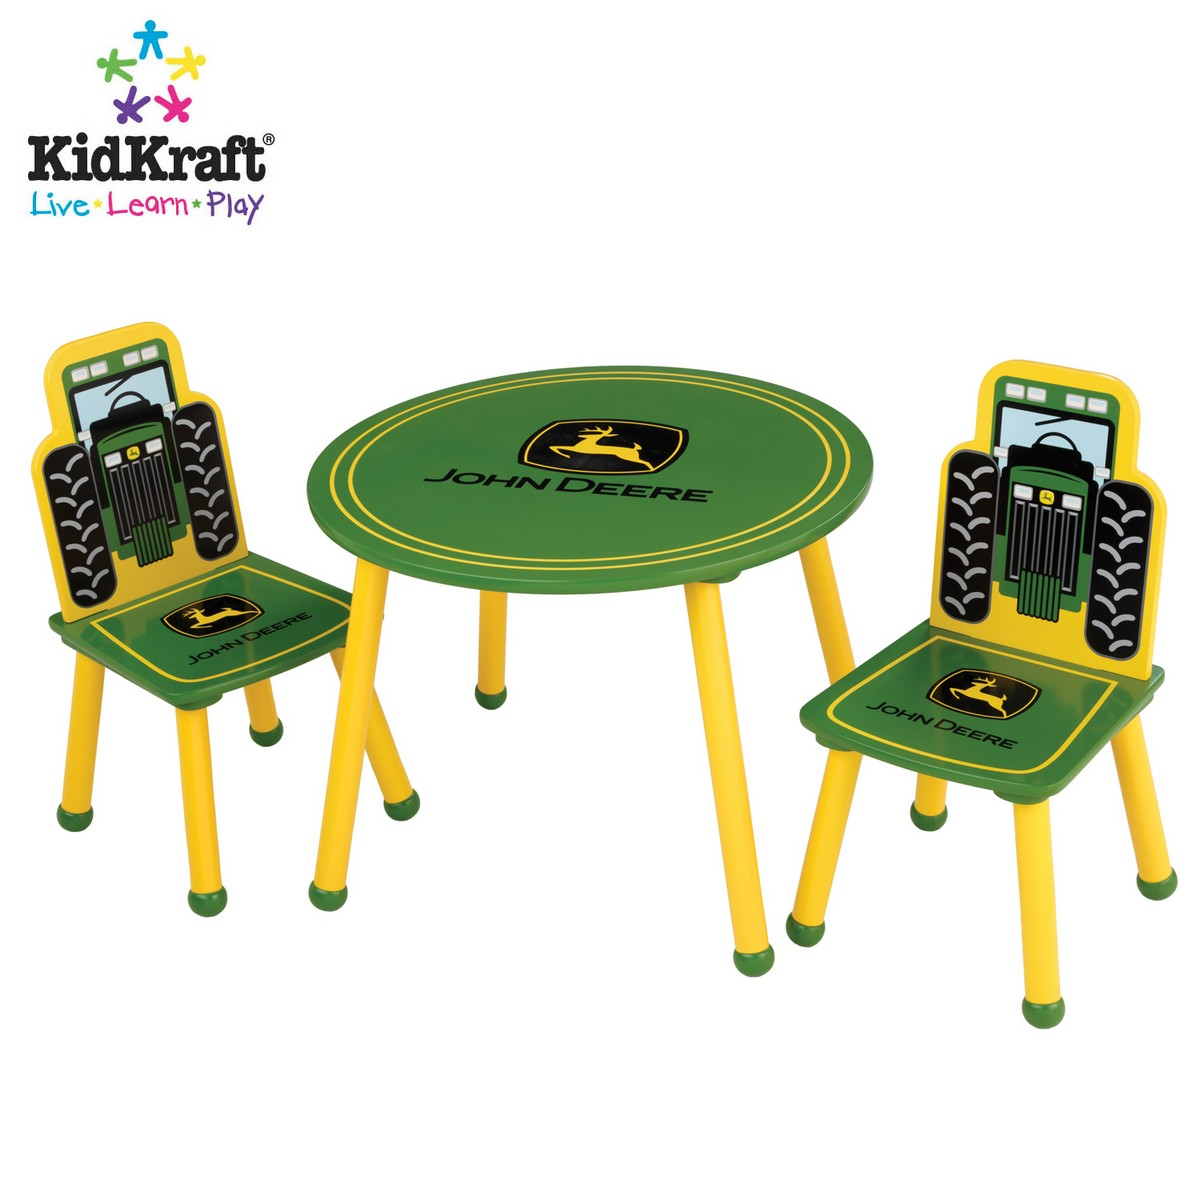 John Deere Table and Chair Set KidKraft 11011